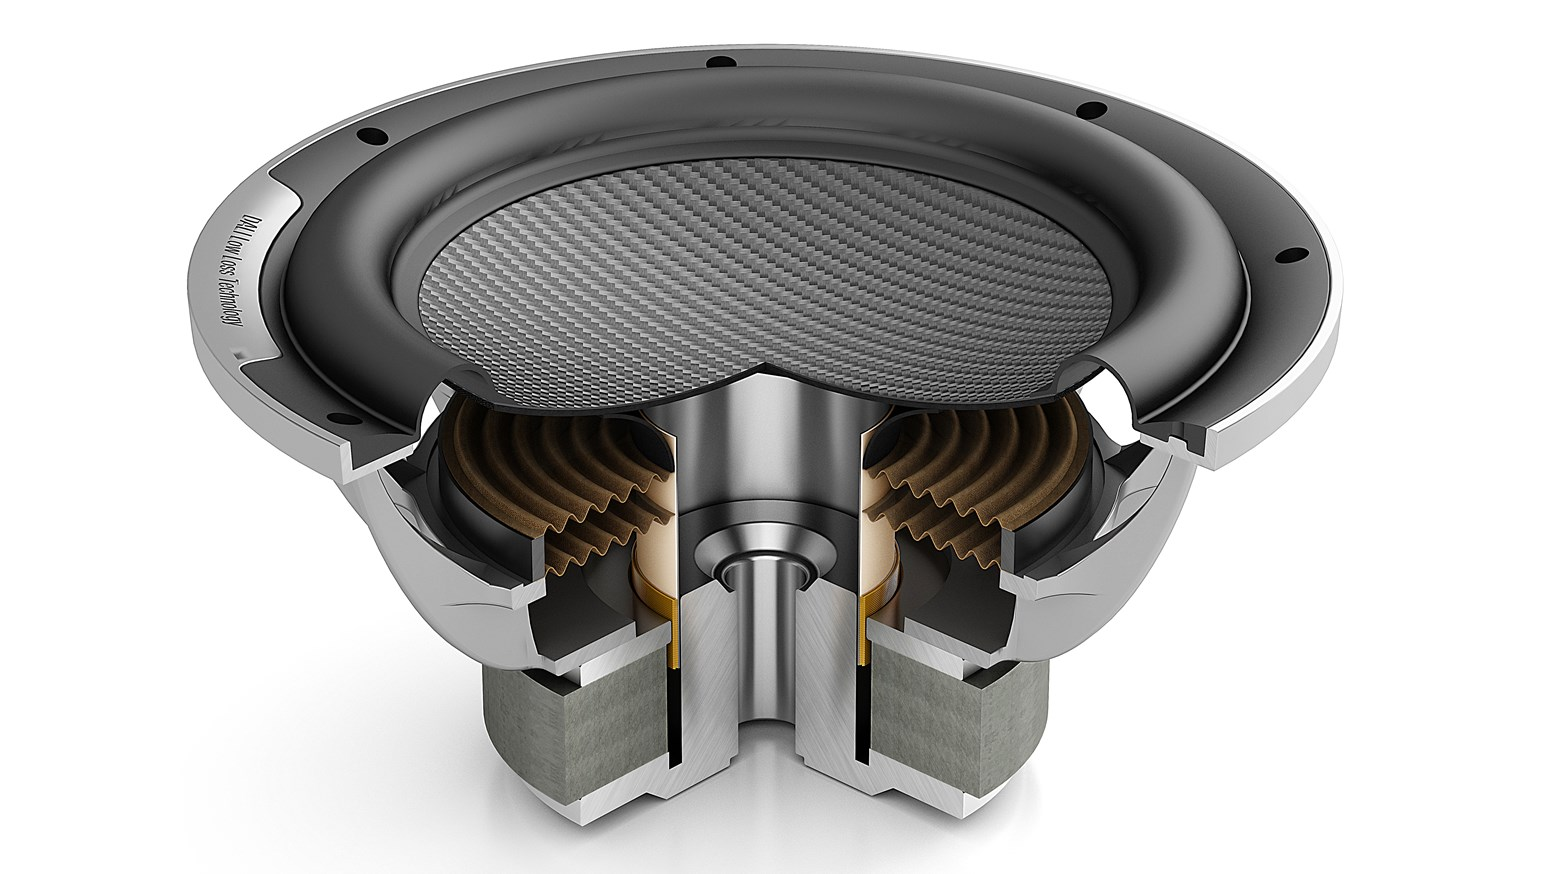 DALI SUB P-10 DSS - Subwoofer for high-end stereo and home